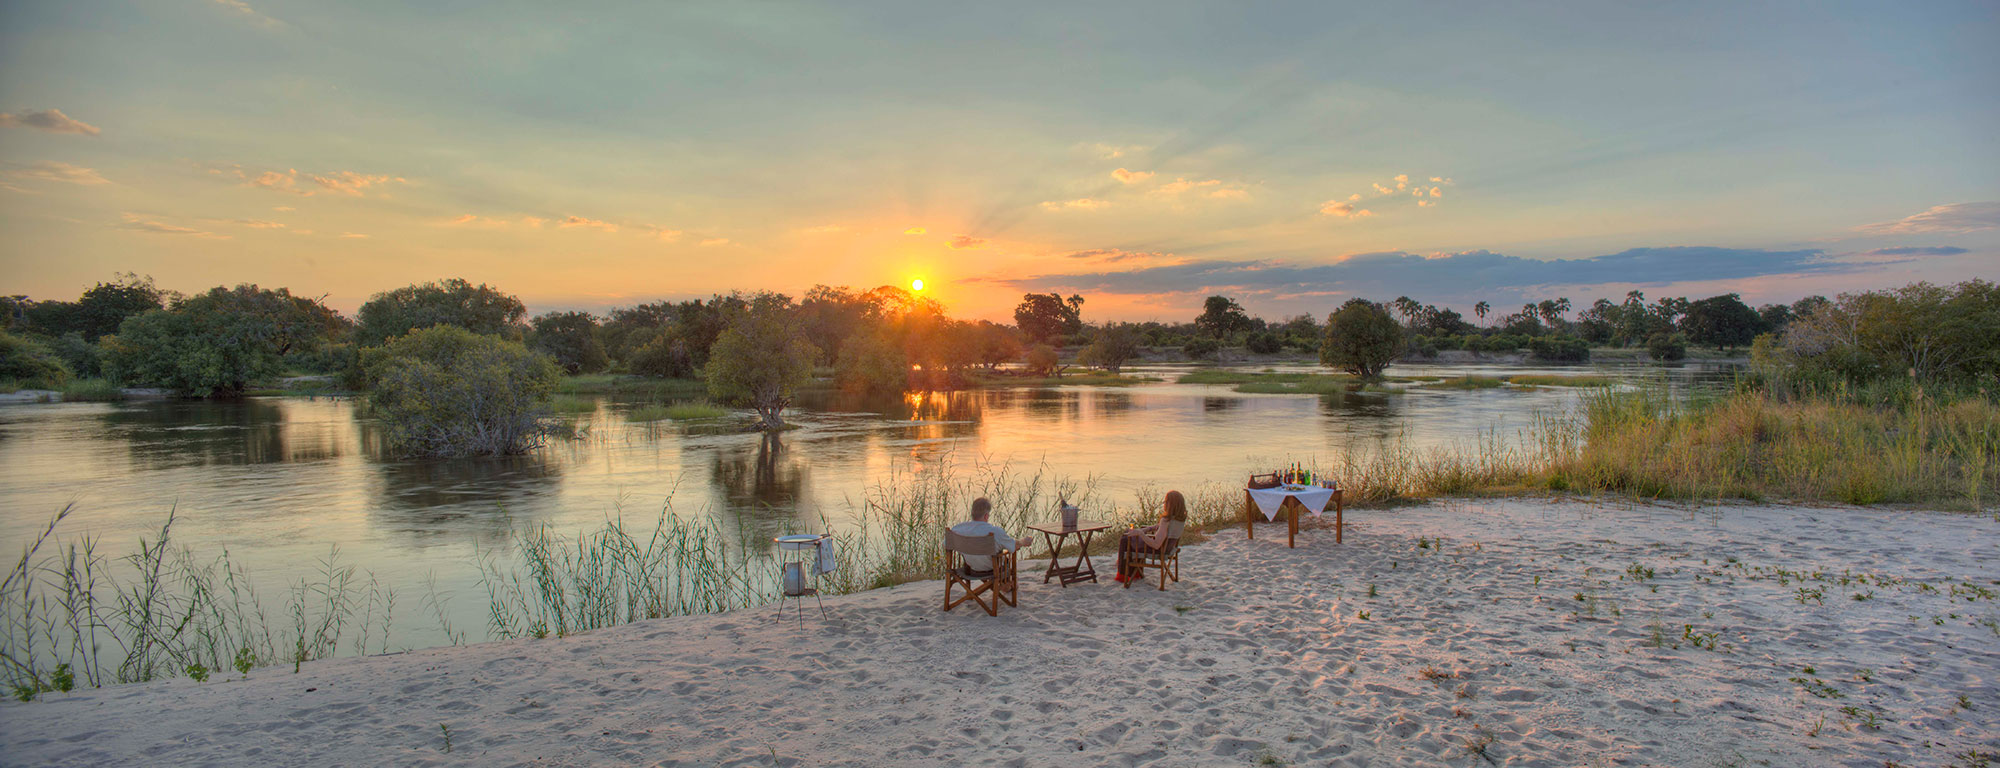 The River Club, Zambezi River at sunset